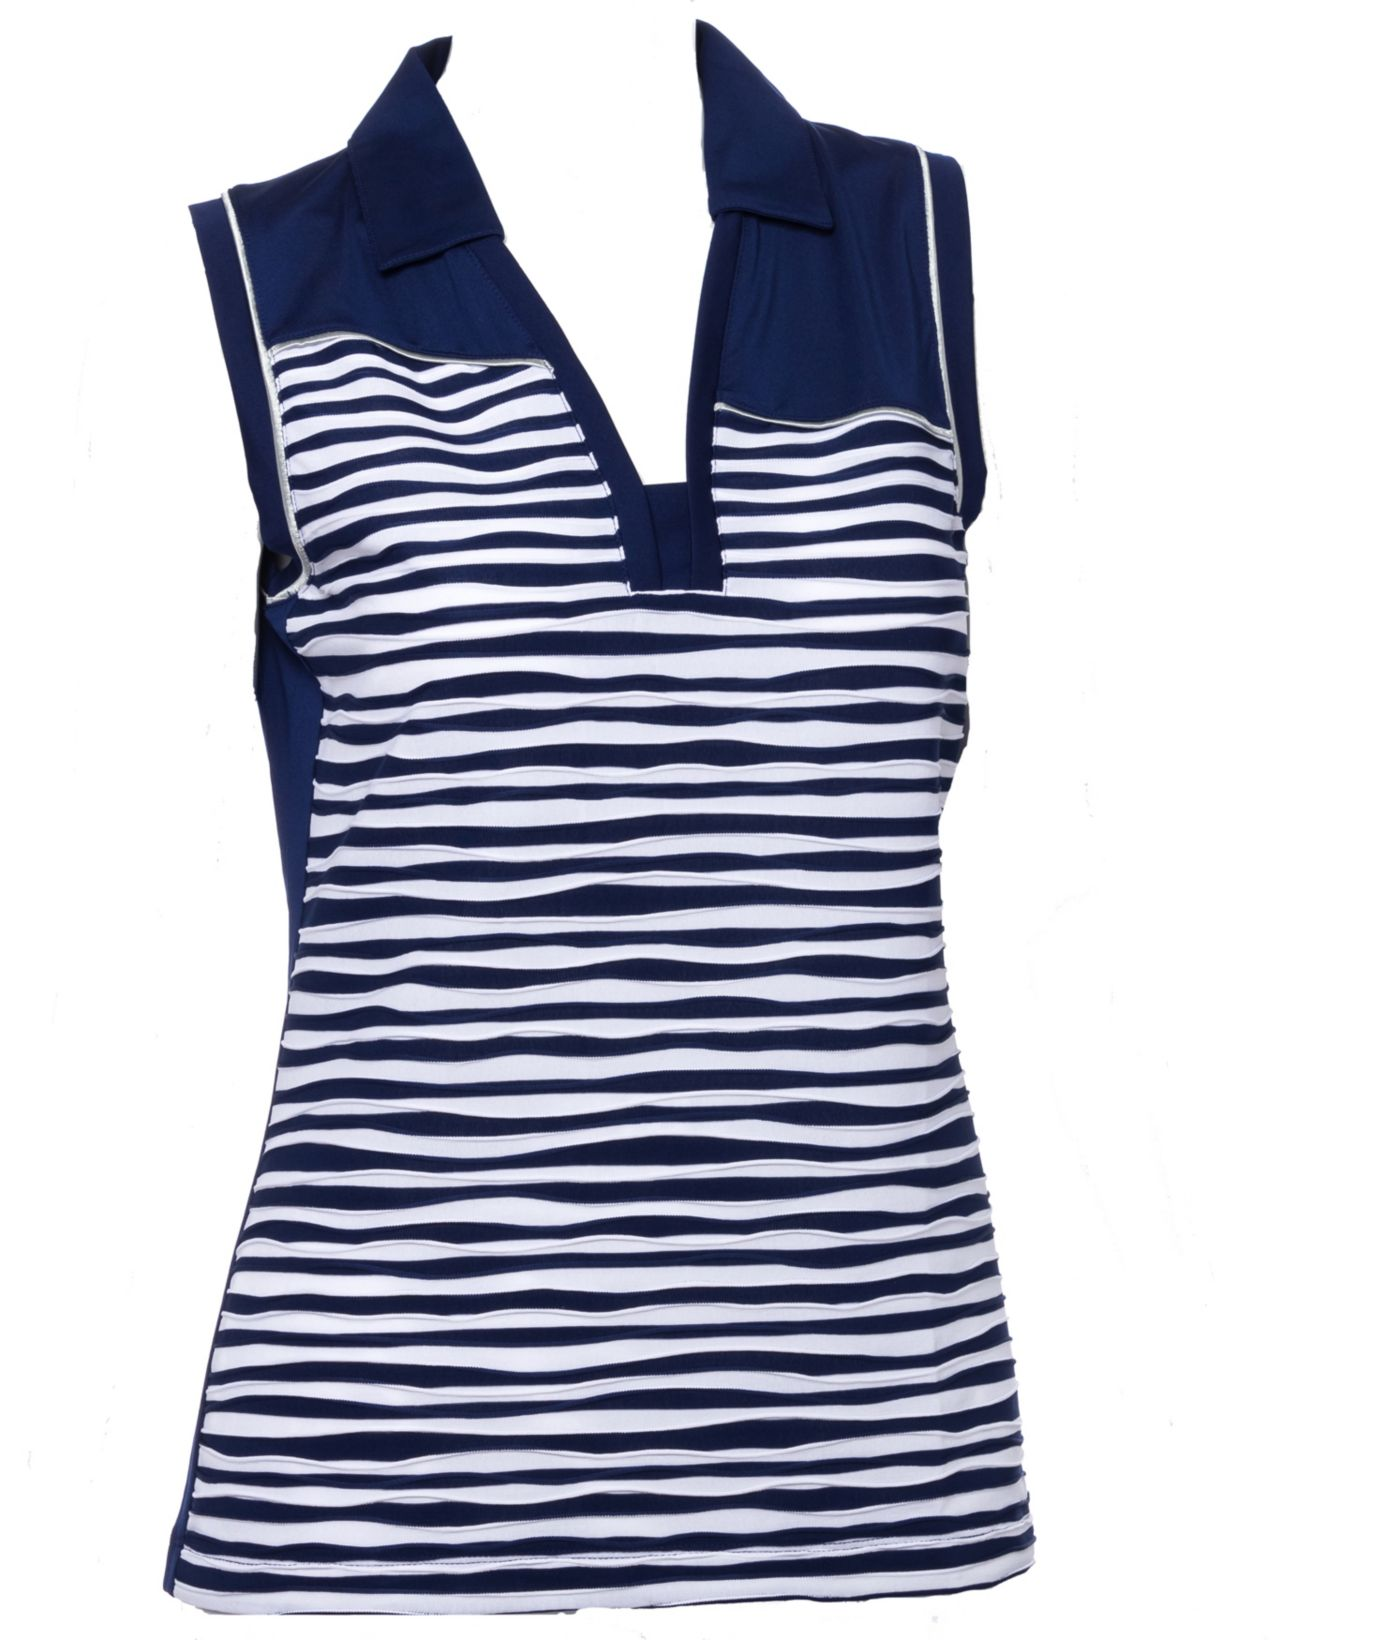 EP Pro Women's Sleeveless Textured Stripe Print Golf Polo